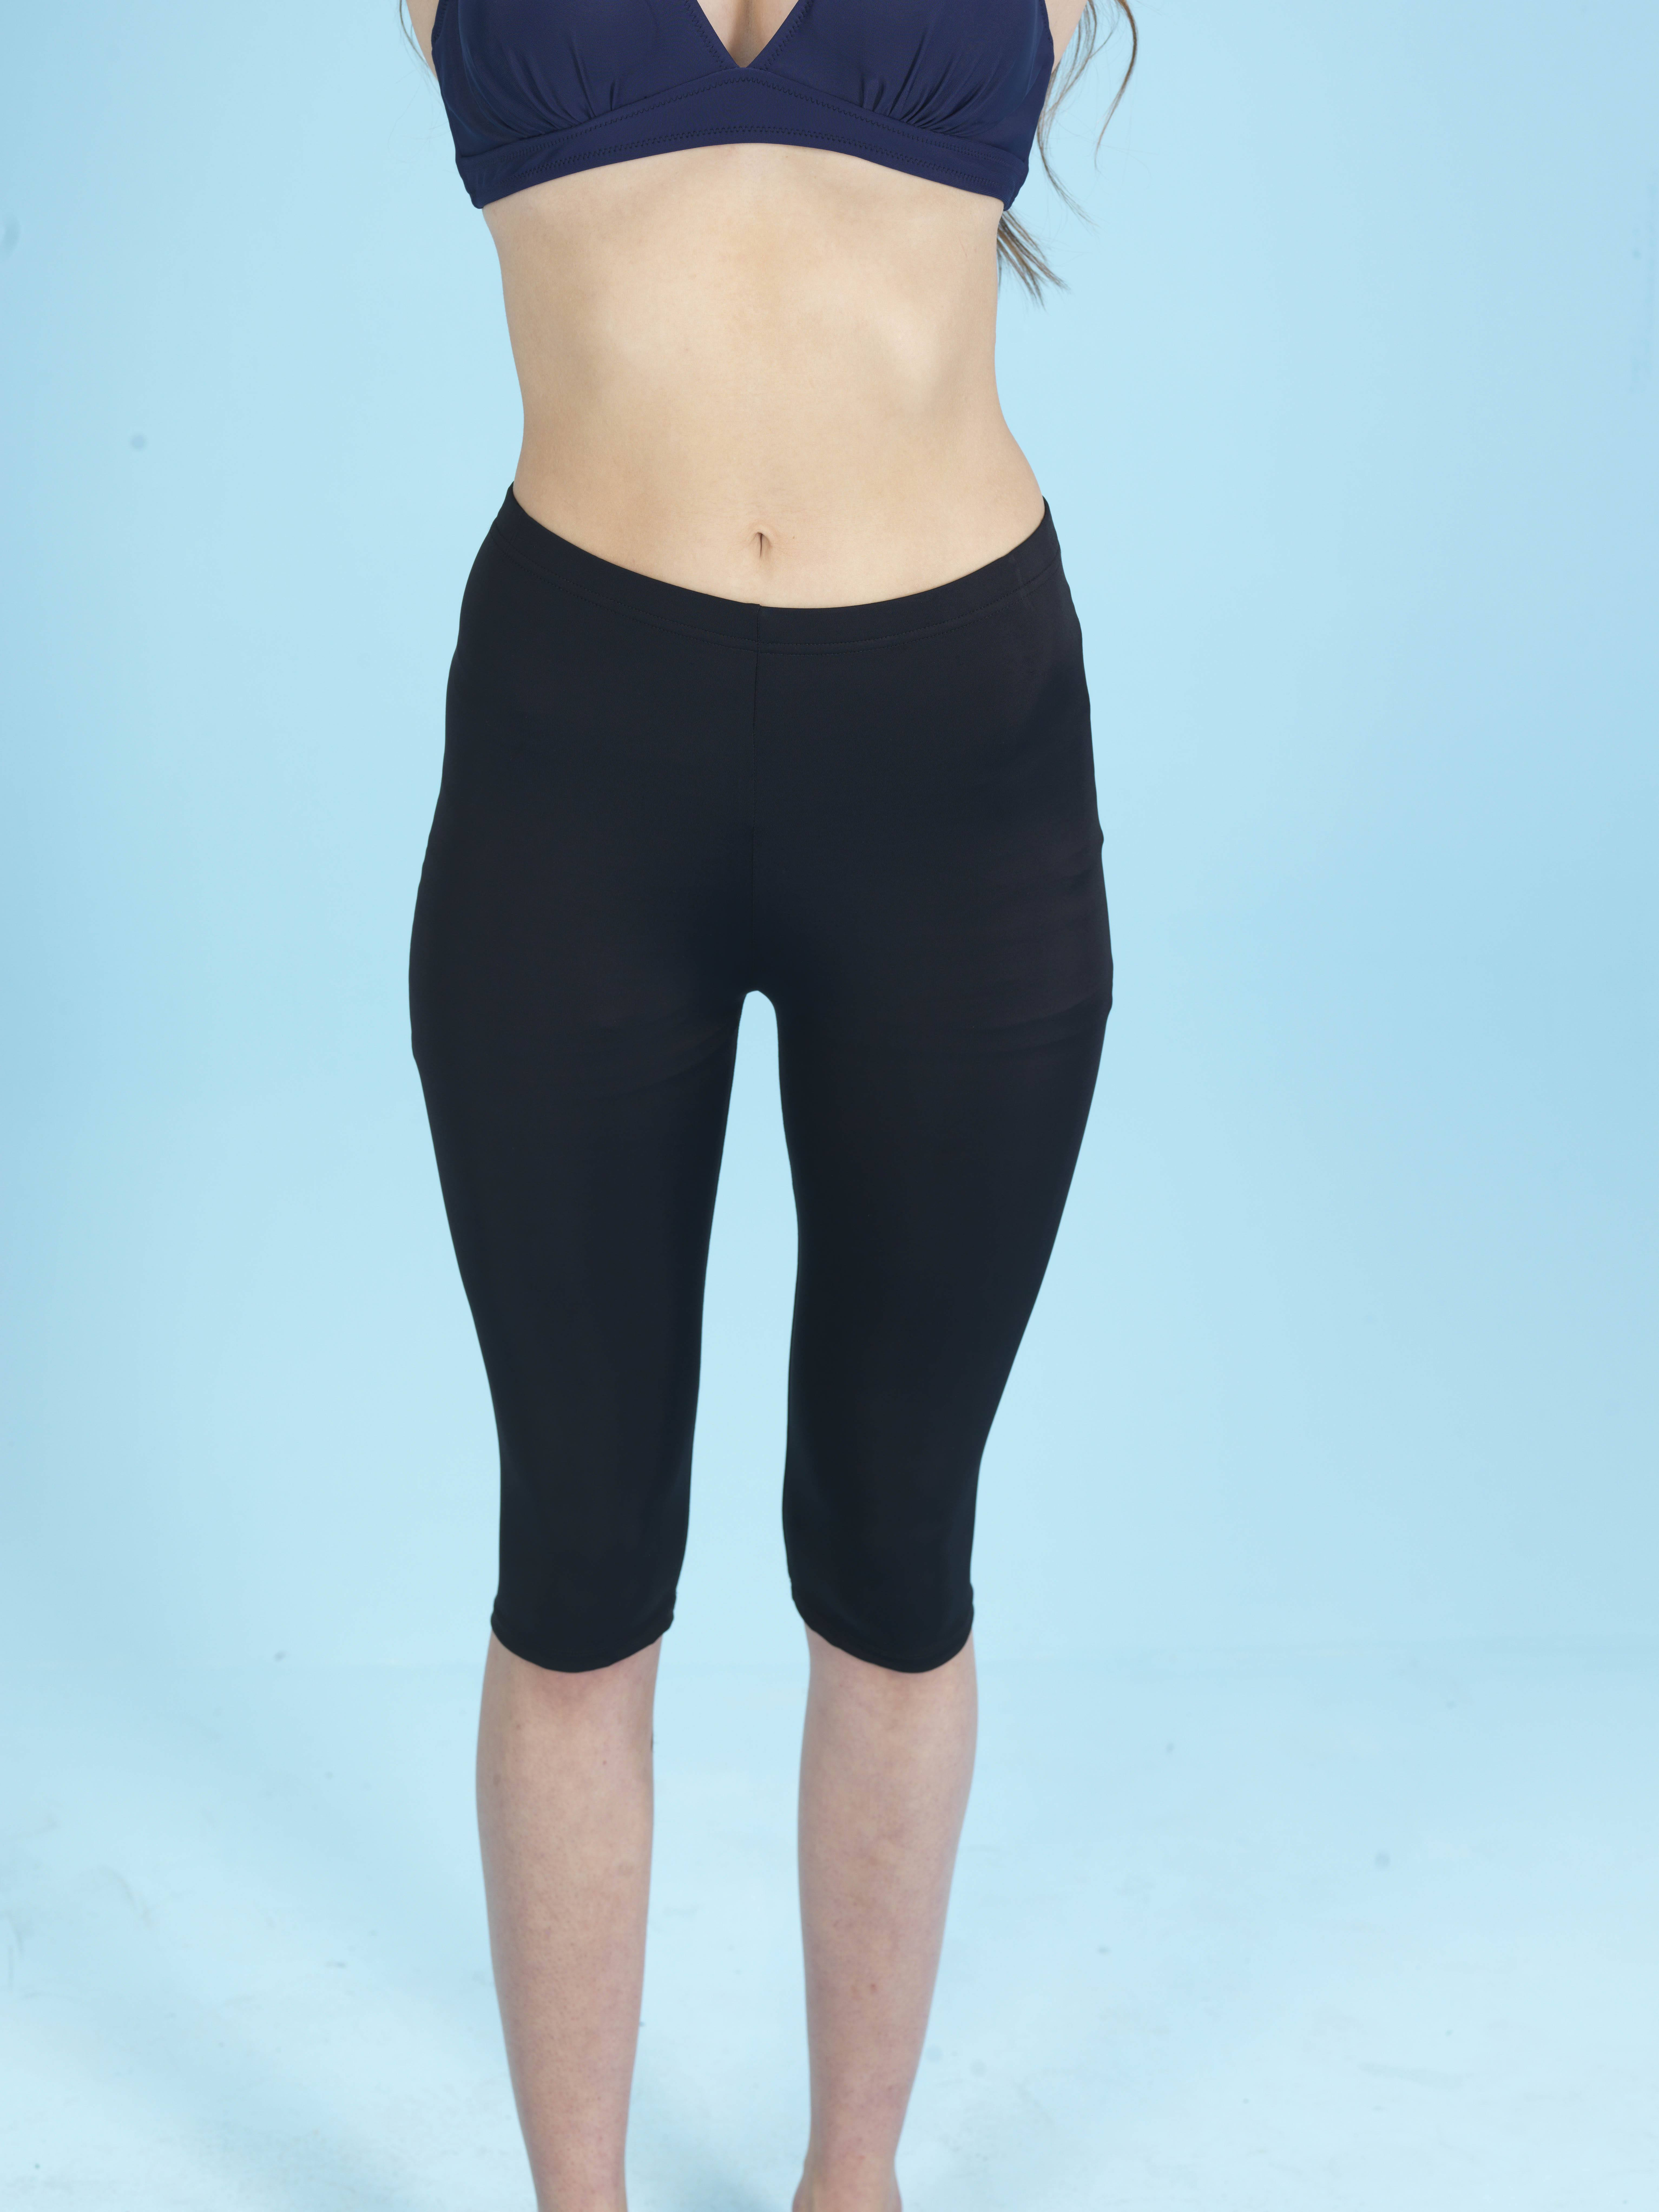 Capri Sportlegging.Capri Zwem En Sportlegging Zwart Elif Boutique